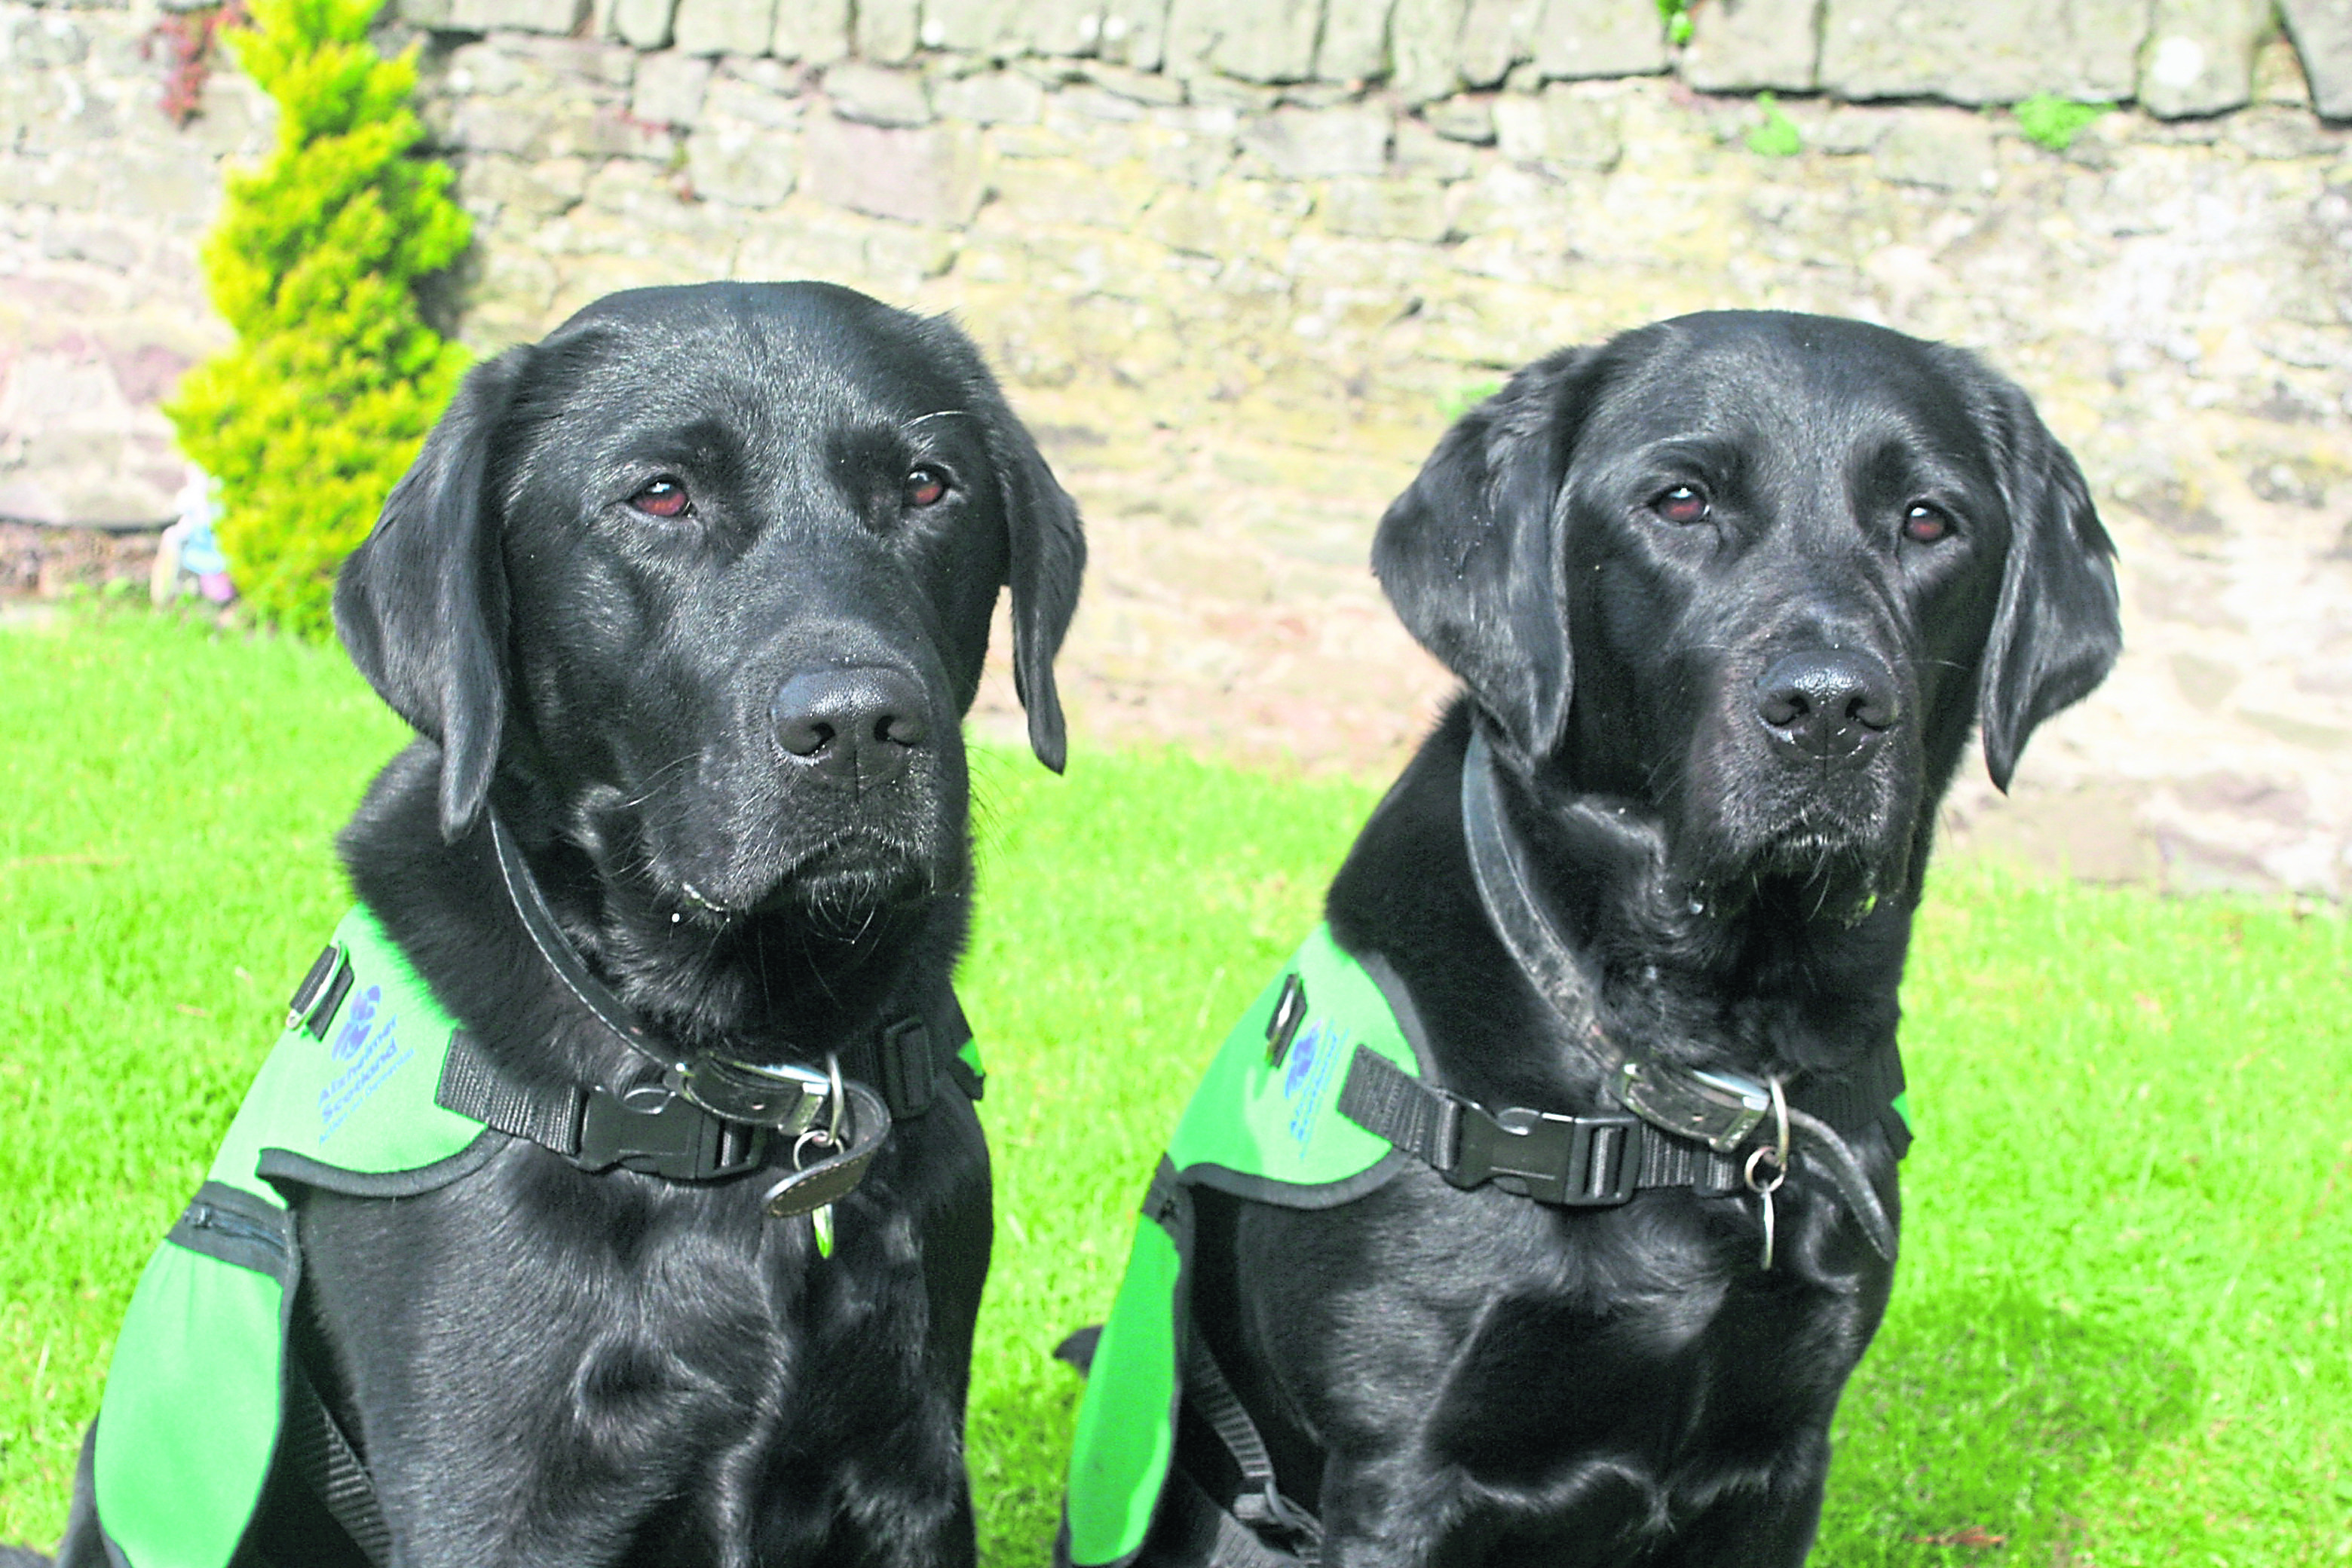 Lenny and Hope help families coping with dementia.